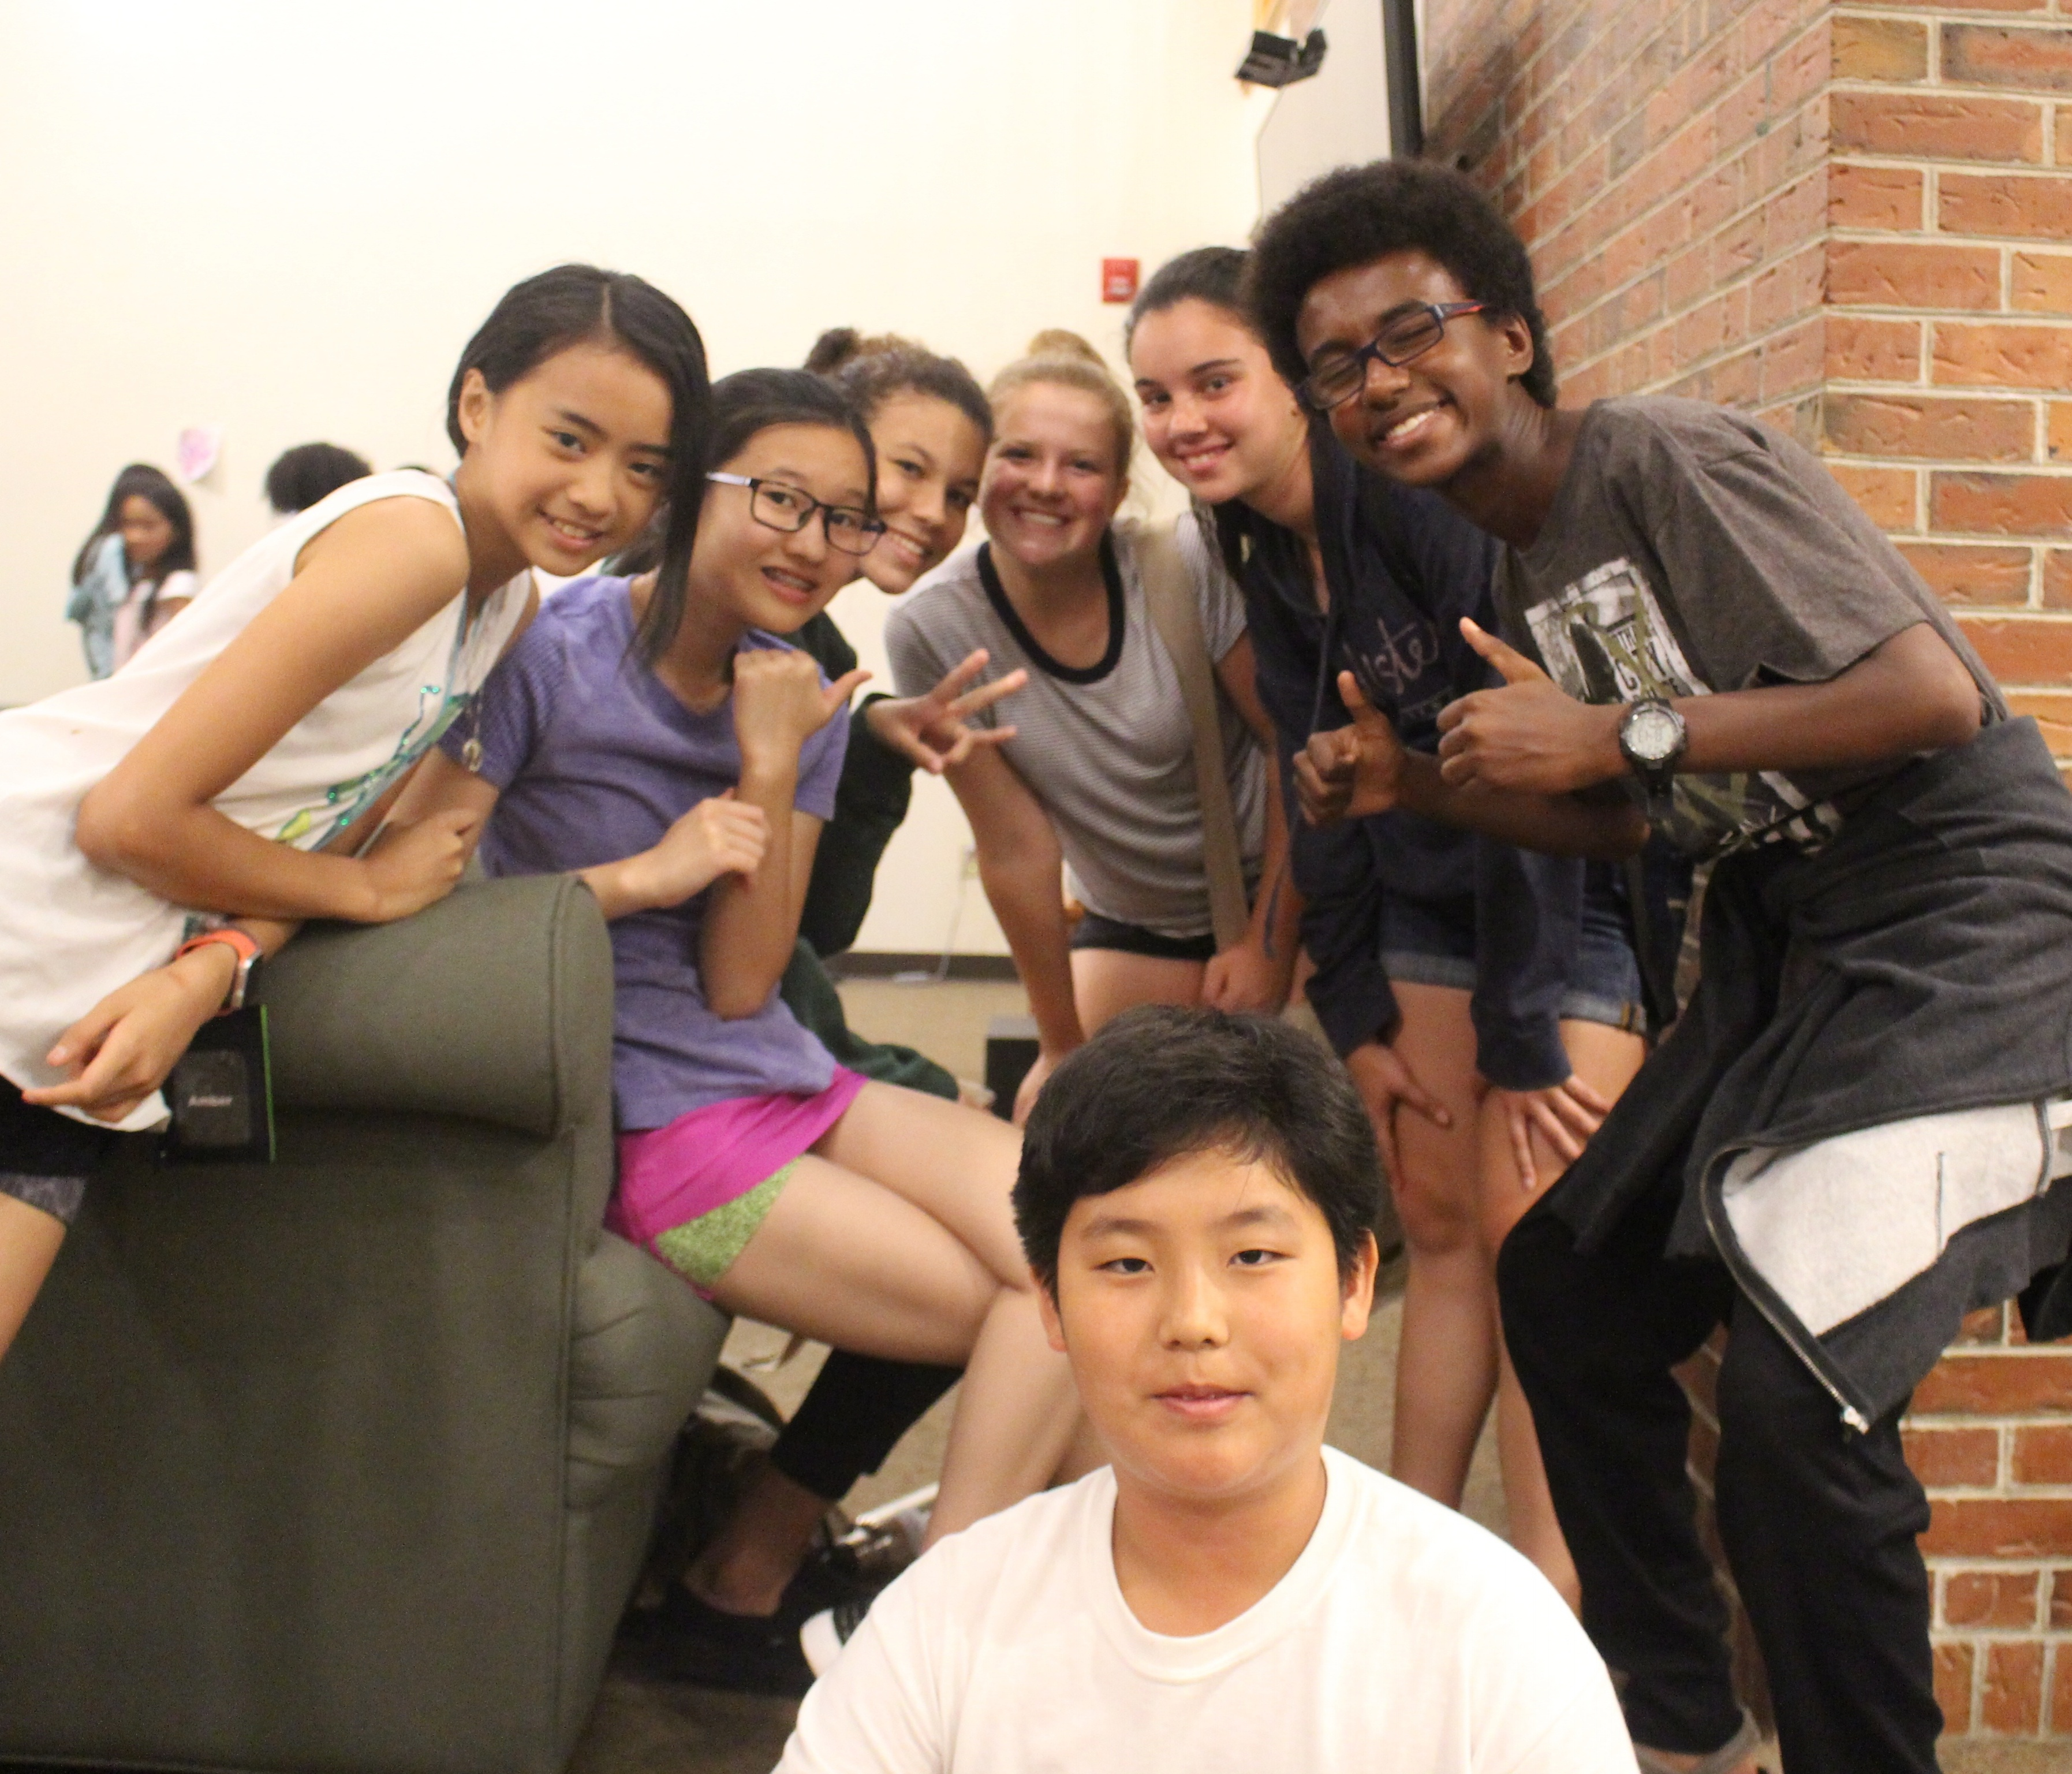 A group of Experimentory students hanging out in the central common room shared by the boys' and girls' dorms.